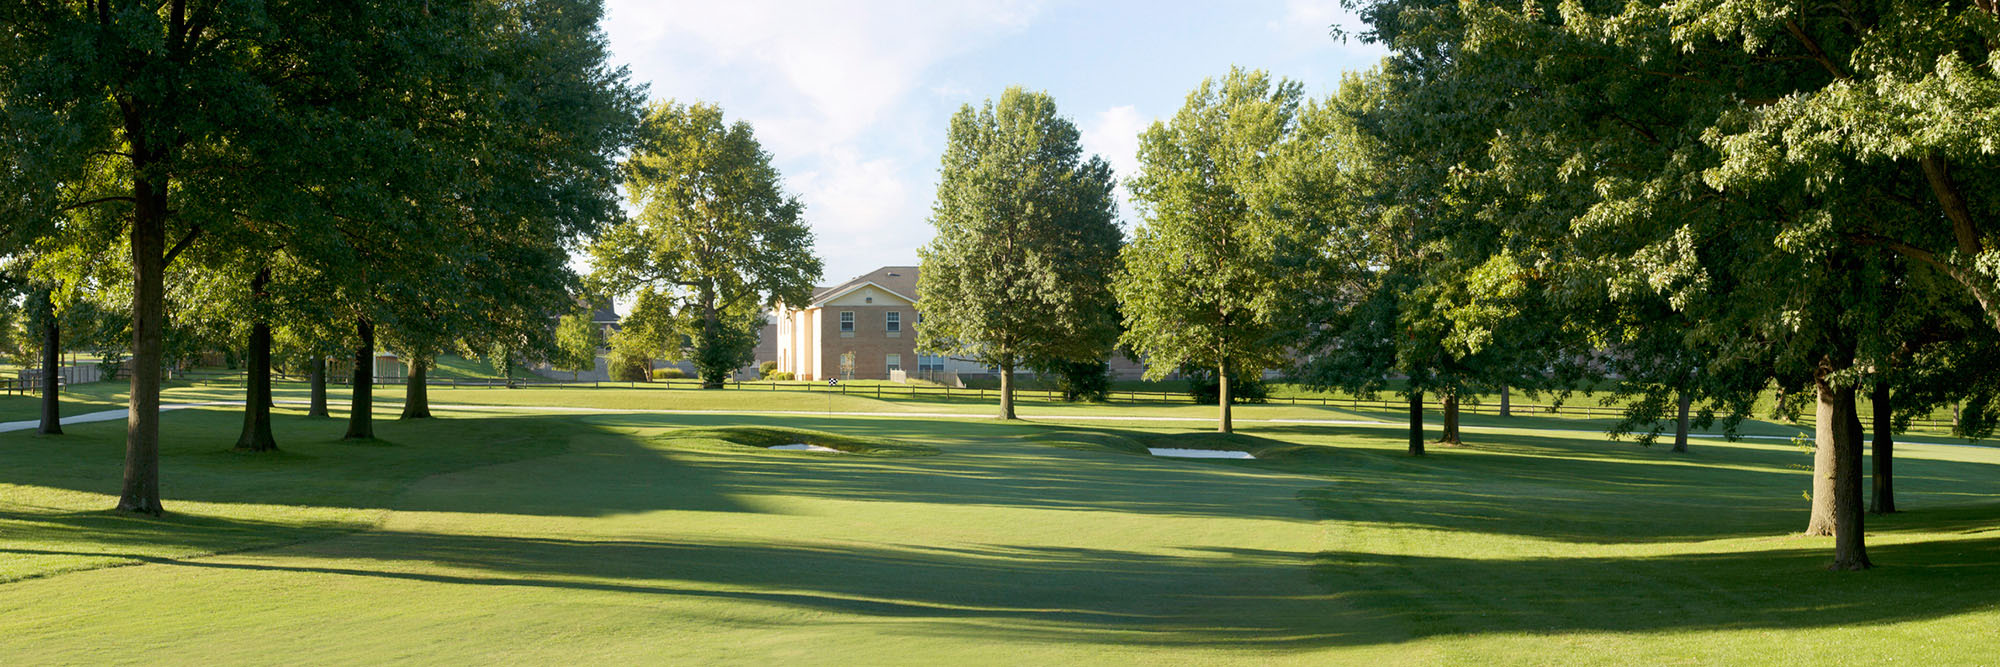 Golf Course Image - Twin Oaks Country Club No. 2